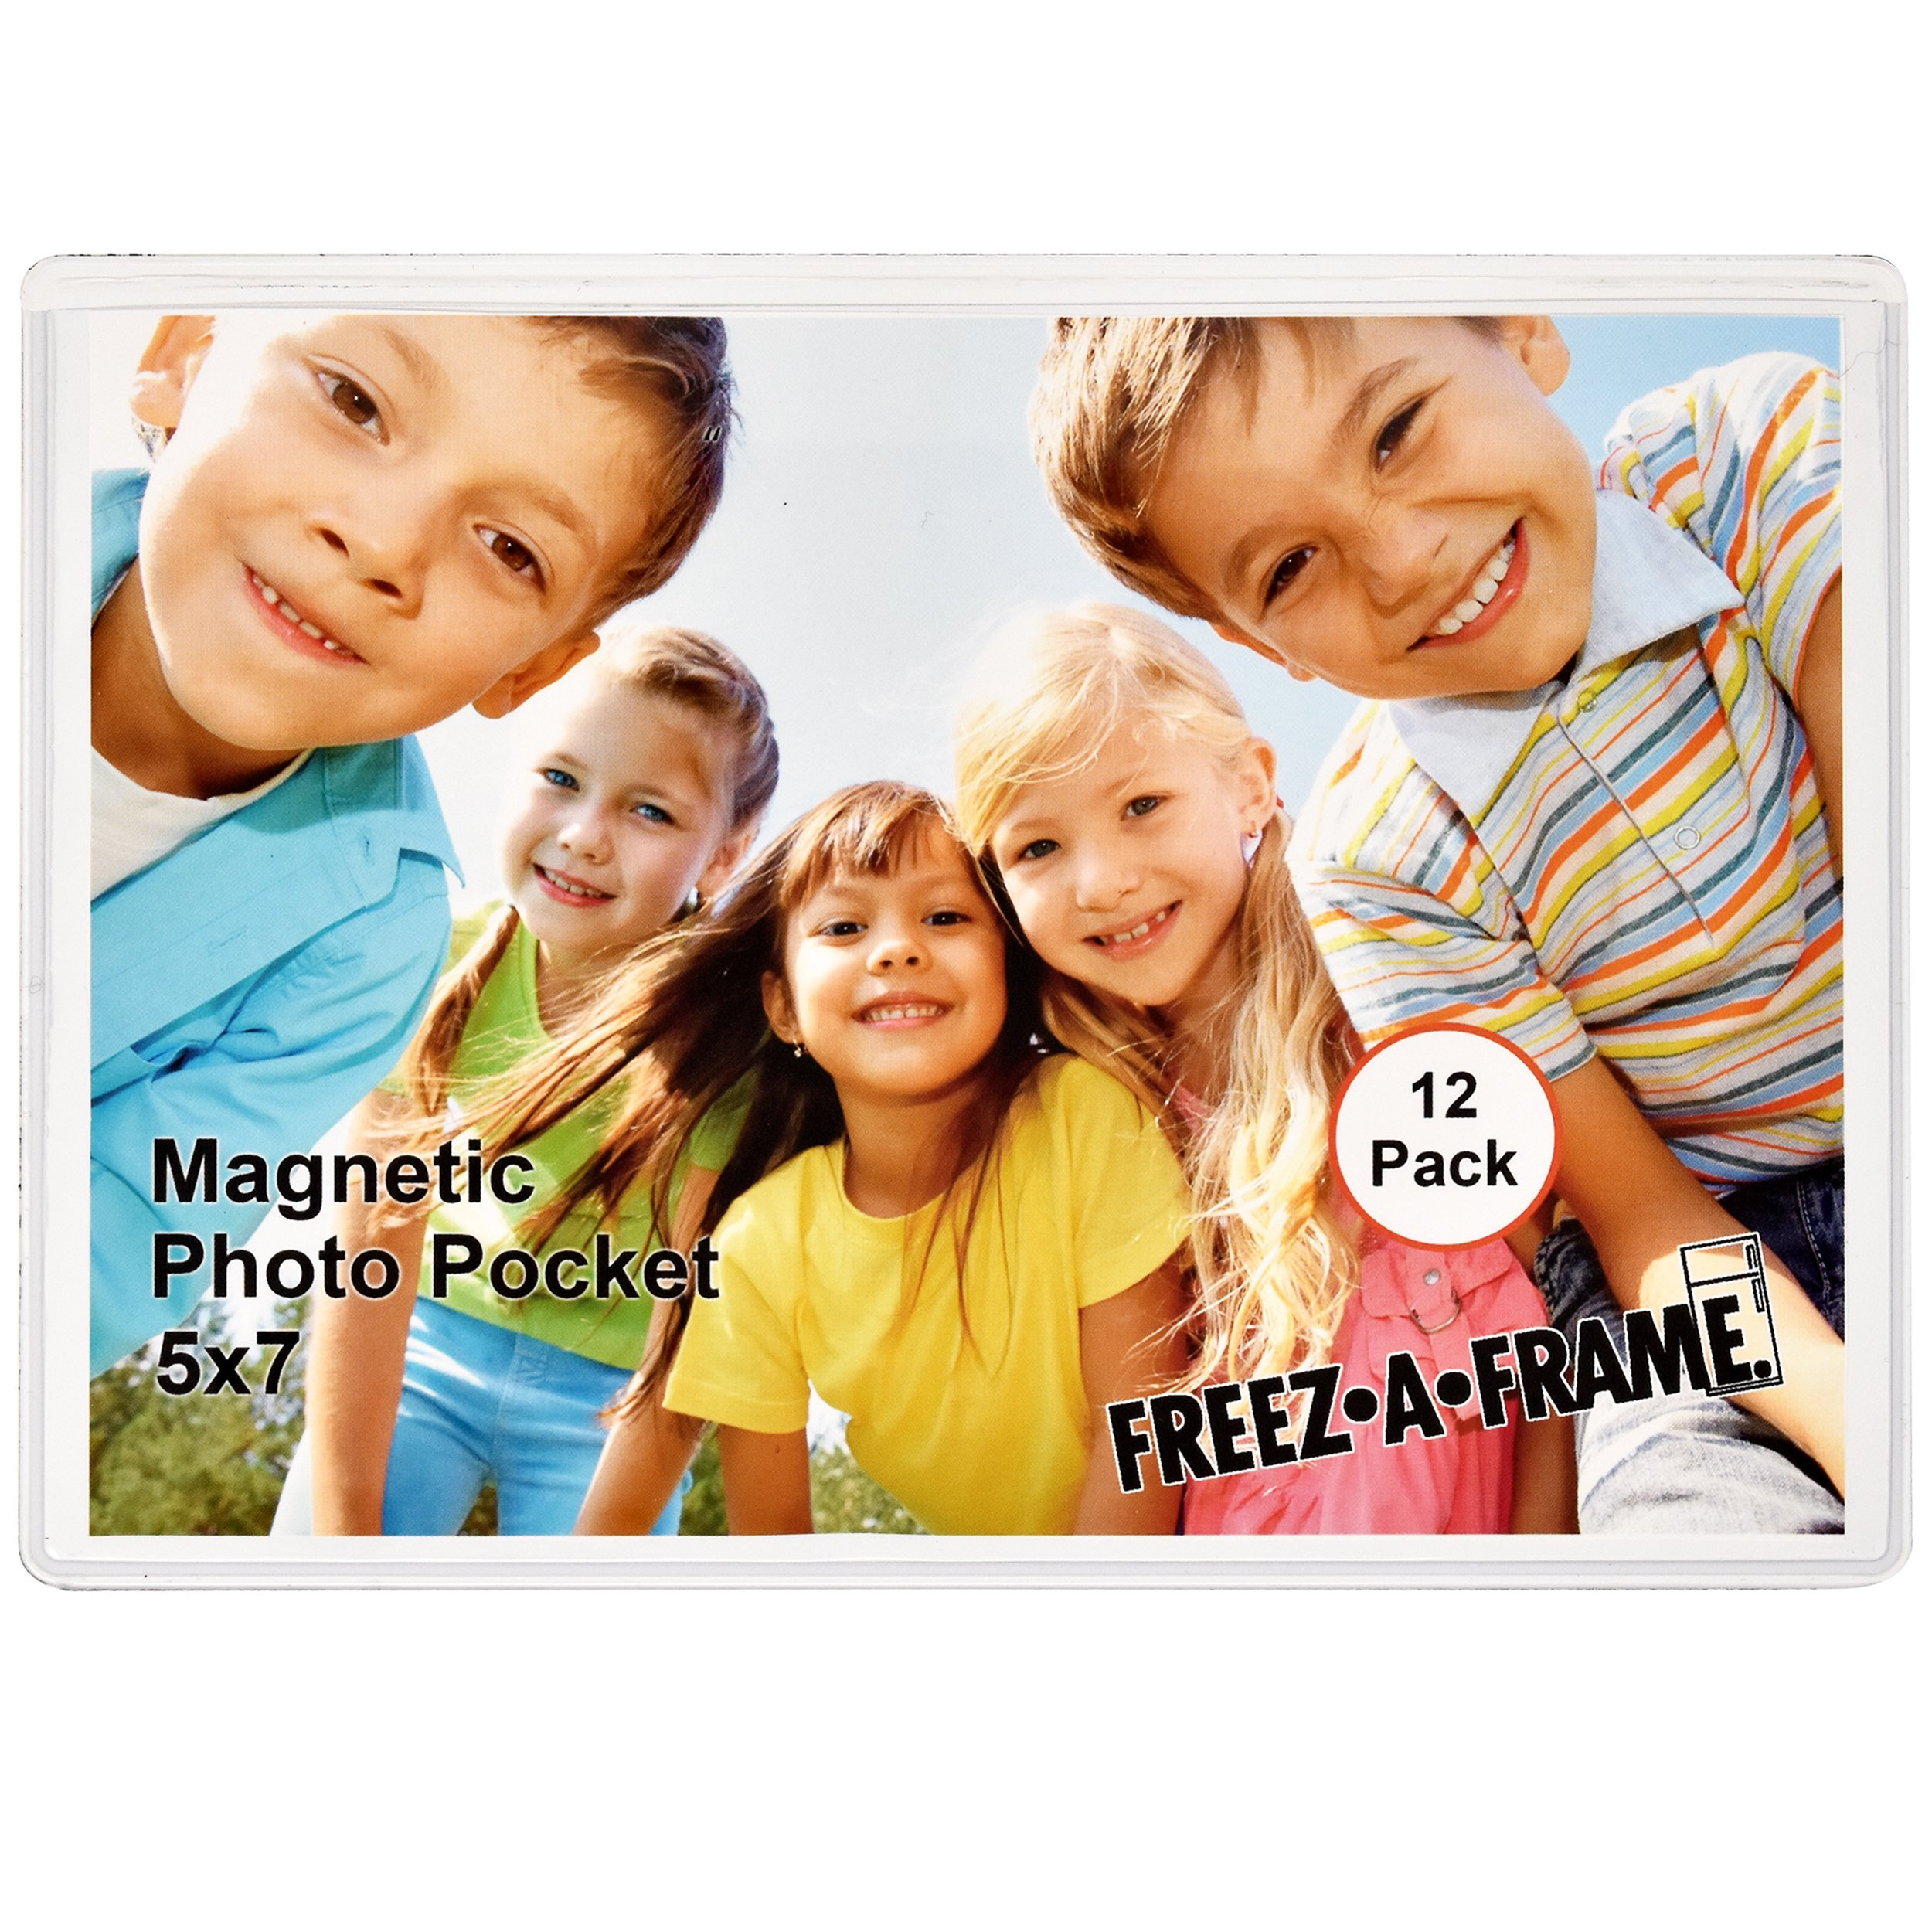 12 Pack 5 x 7 Magnetic Picture Frames Pockets Sleeves Holds 5 x 7 Inches Photo for Refrigerator by Freez-A-Frame Made in the USA by Freeze A Frame